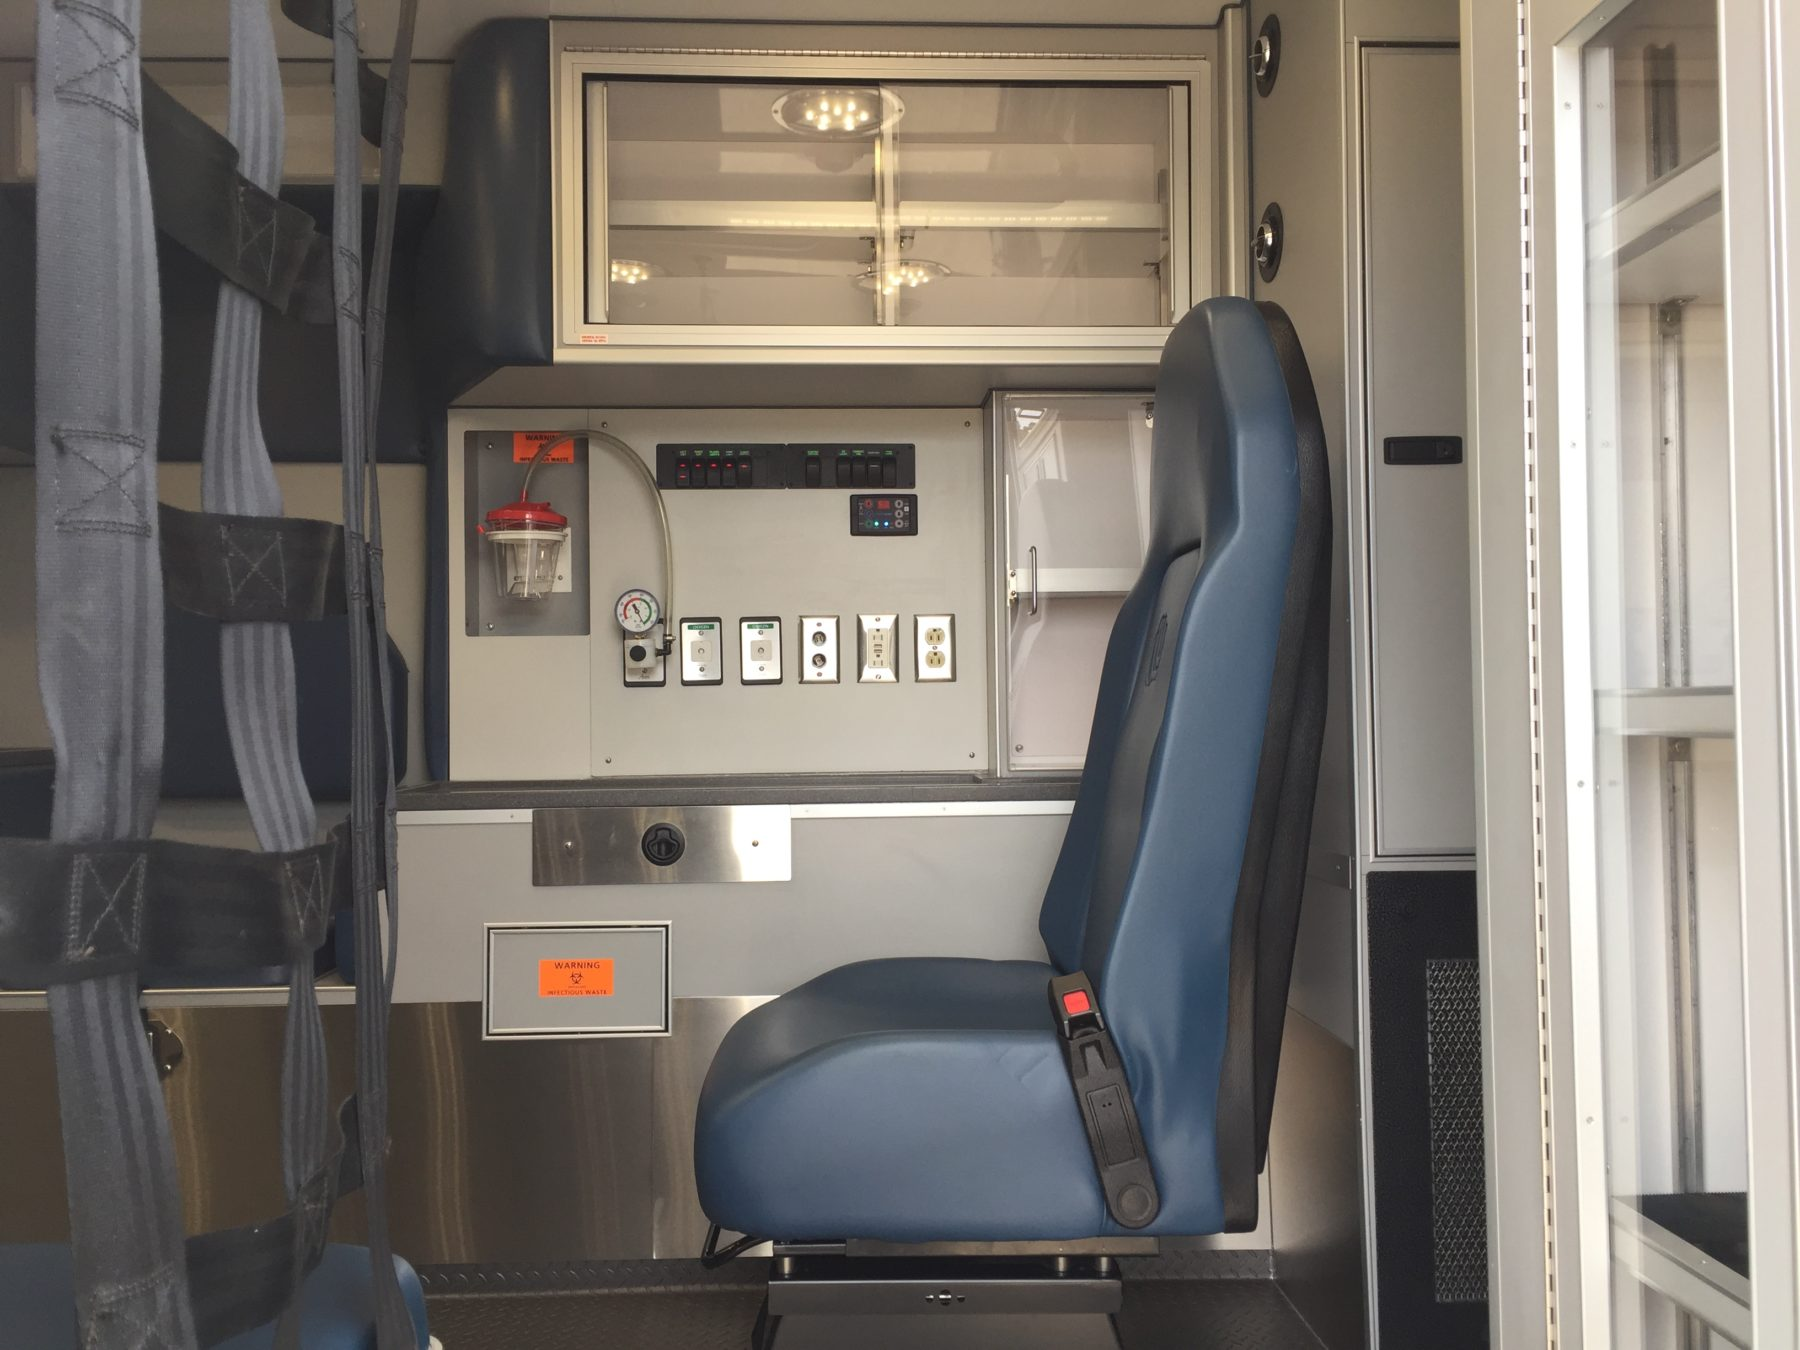 2017 Ford F450 4x4 Heavy Duty Ambulance For Sale – Picture 14